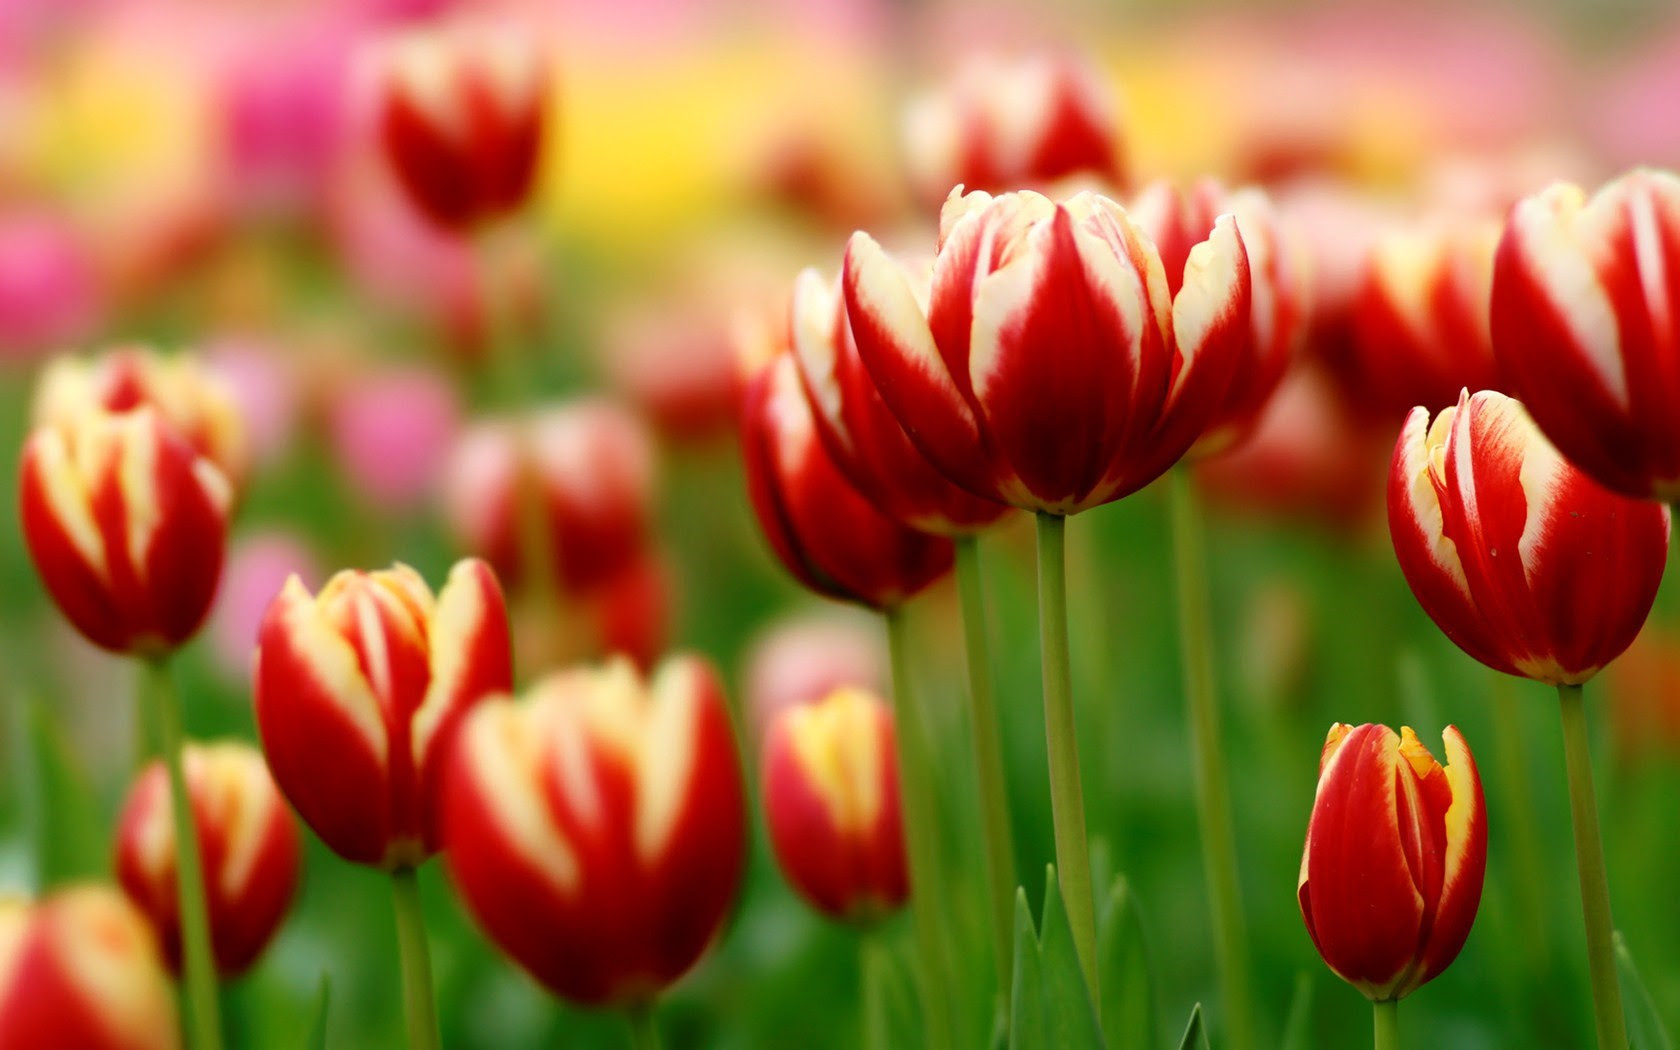 Spring Tulips Wallpaper Desktops Wallpapersafari